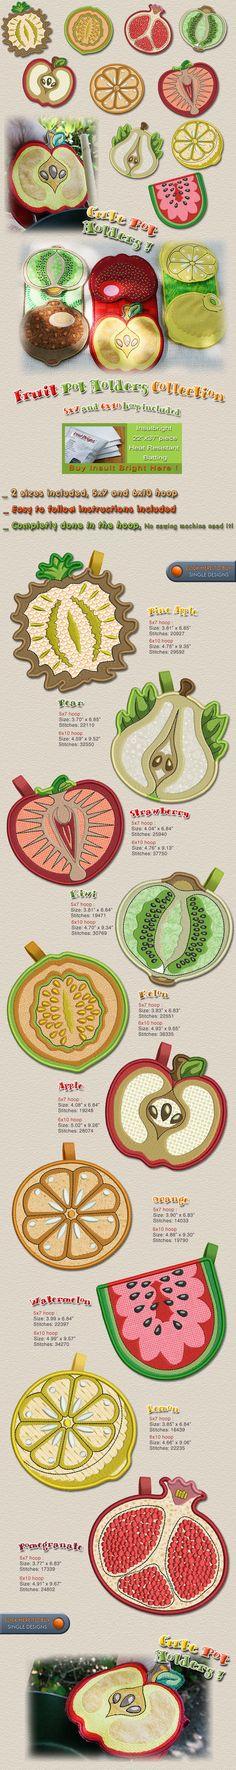 FRUIT POT HOLDERS, KITCHEN Embroidery Designs Free Embroidery Design Patterns Applique